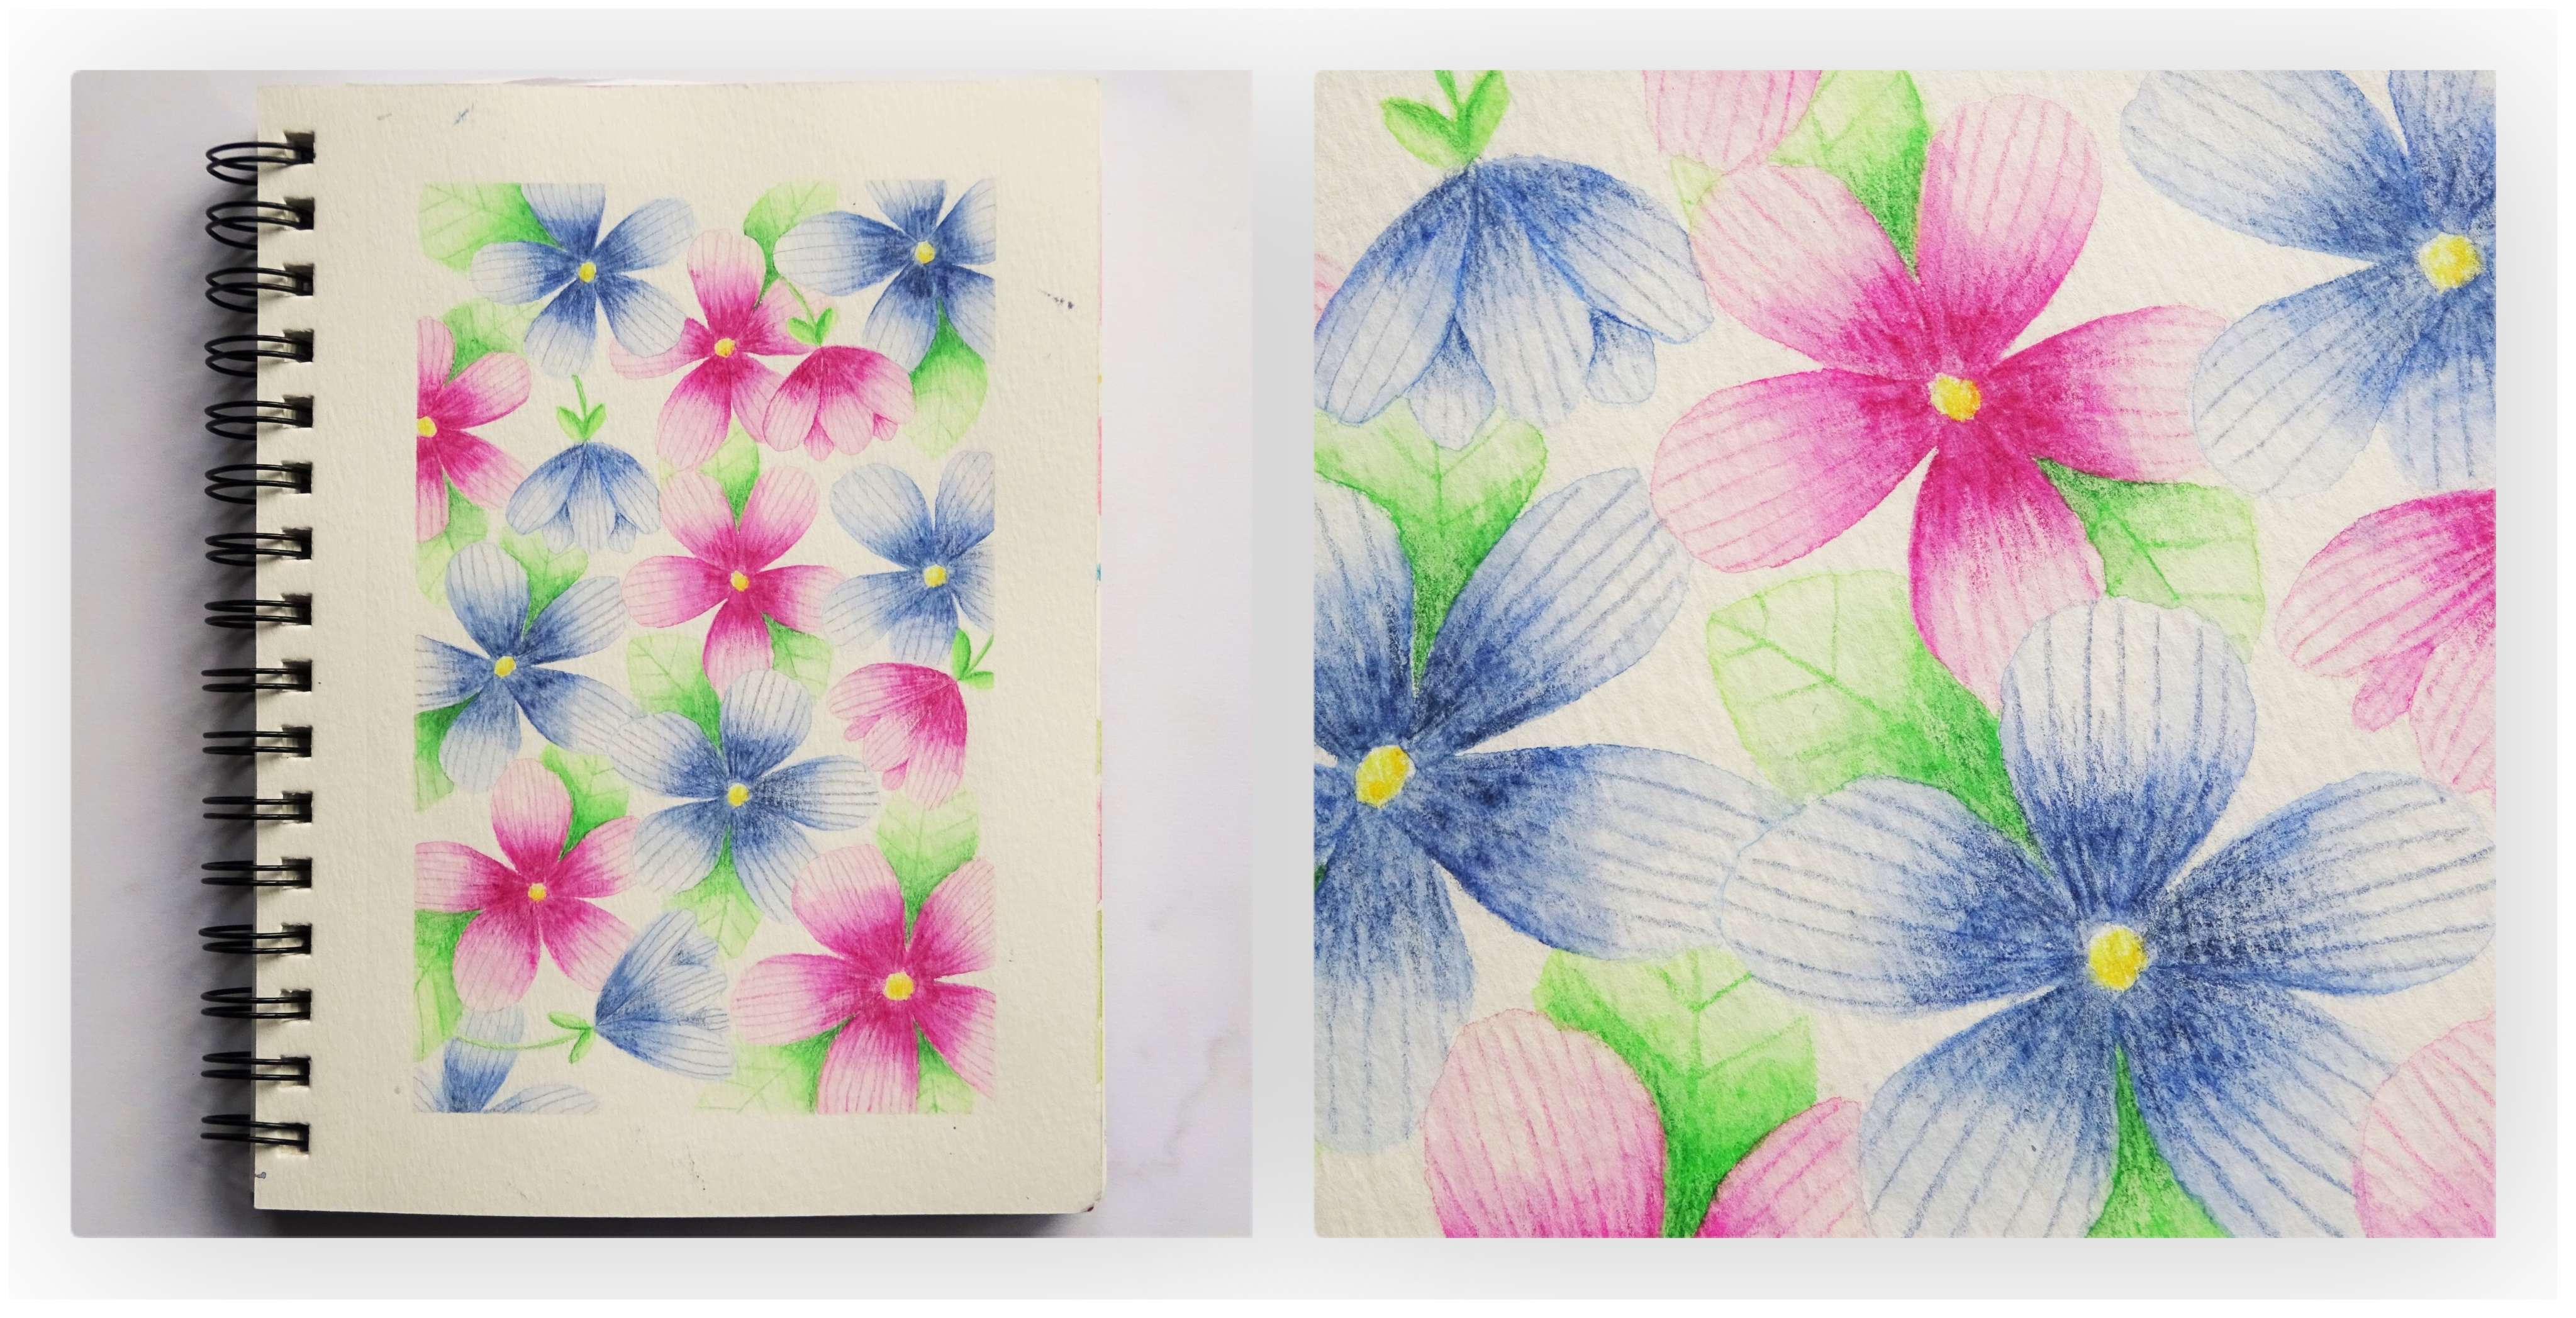 Purple and pink watercolour pencil illustration